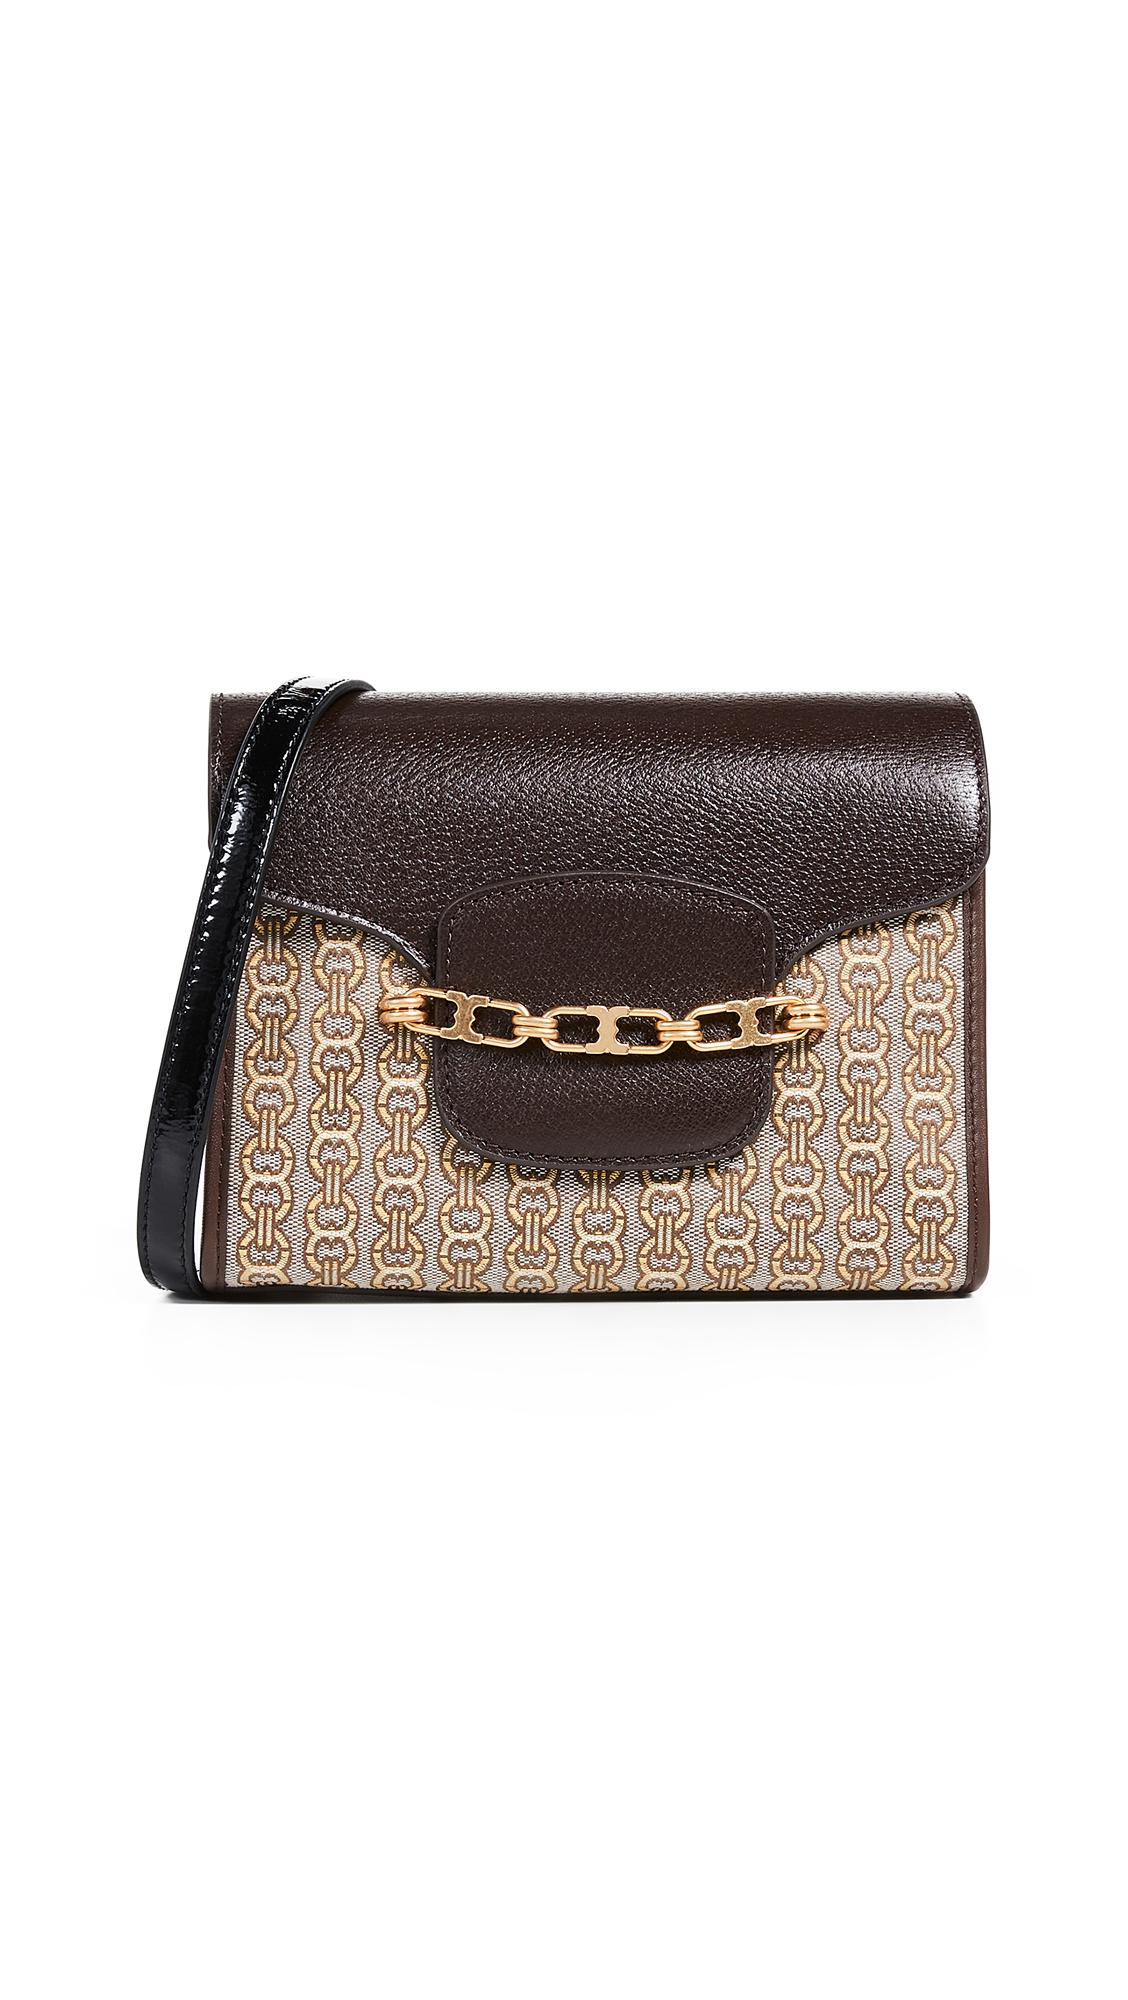 19ba359d6e1 Tory Burch Gemini Link Jacquard Small Crossbody Bag In Coffee New Ivory